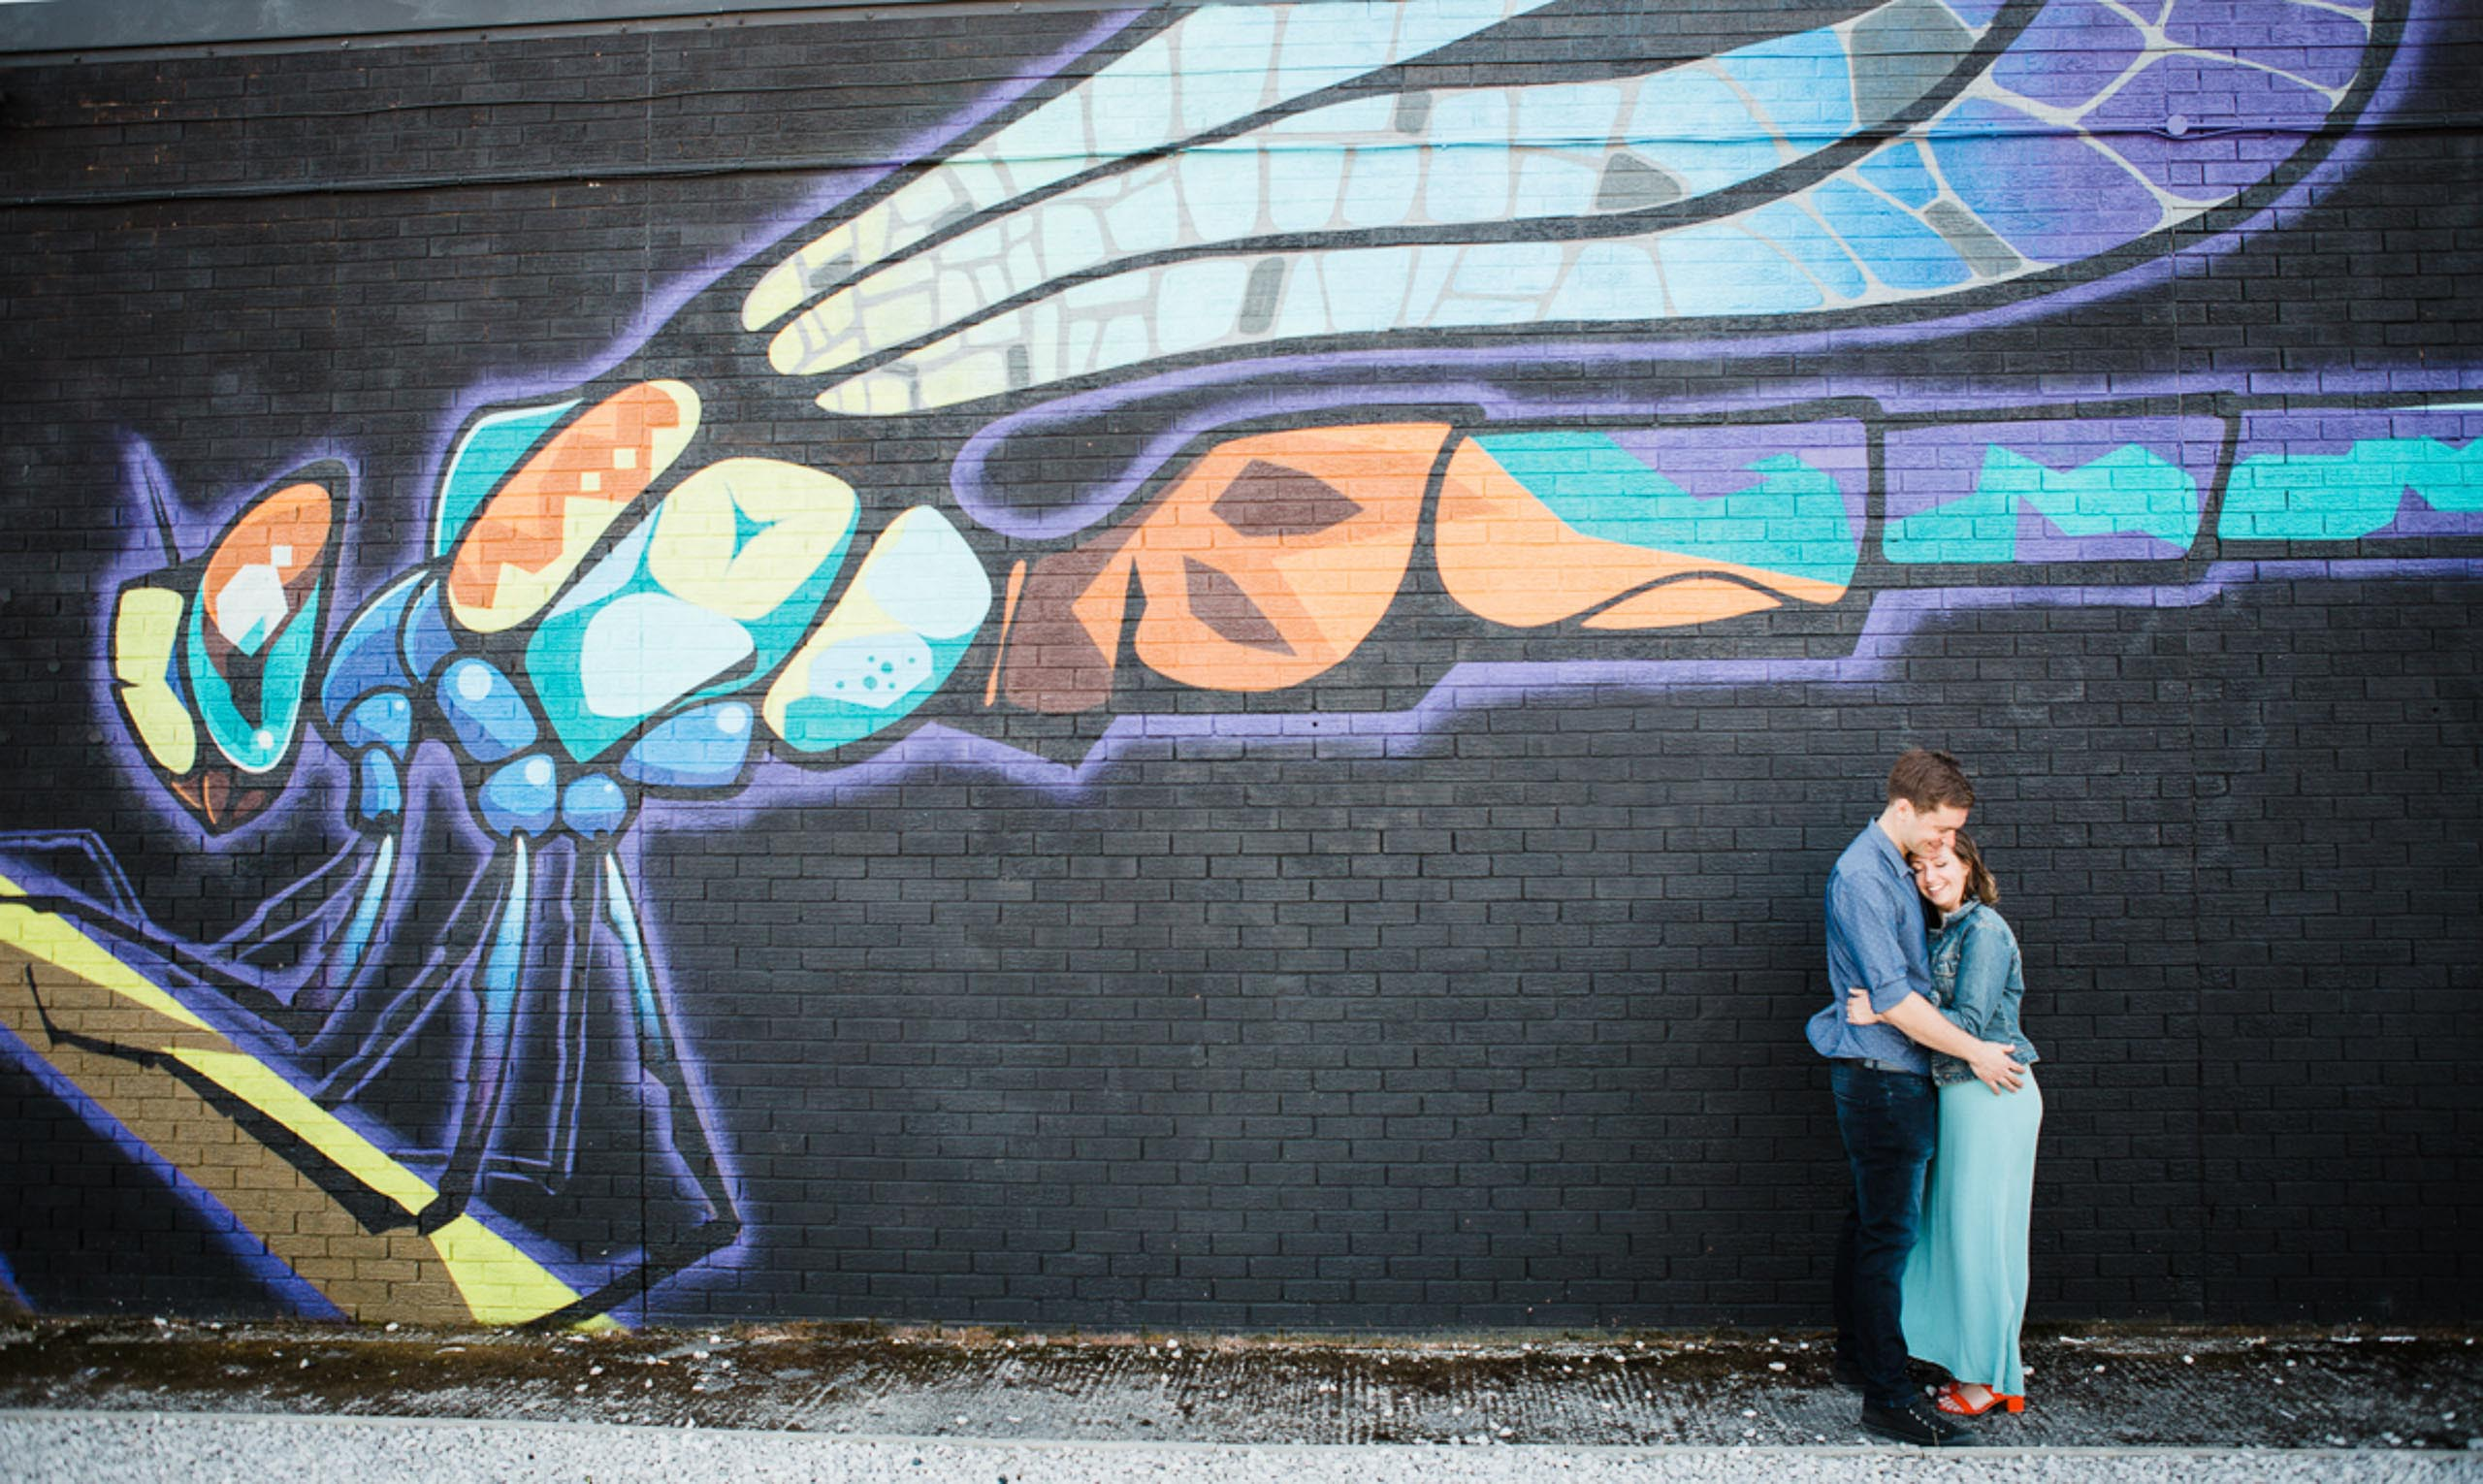 A young couple embrace white stood in front of a graffiti wall depicting a dragonfly